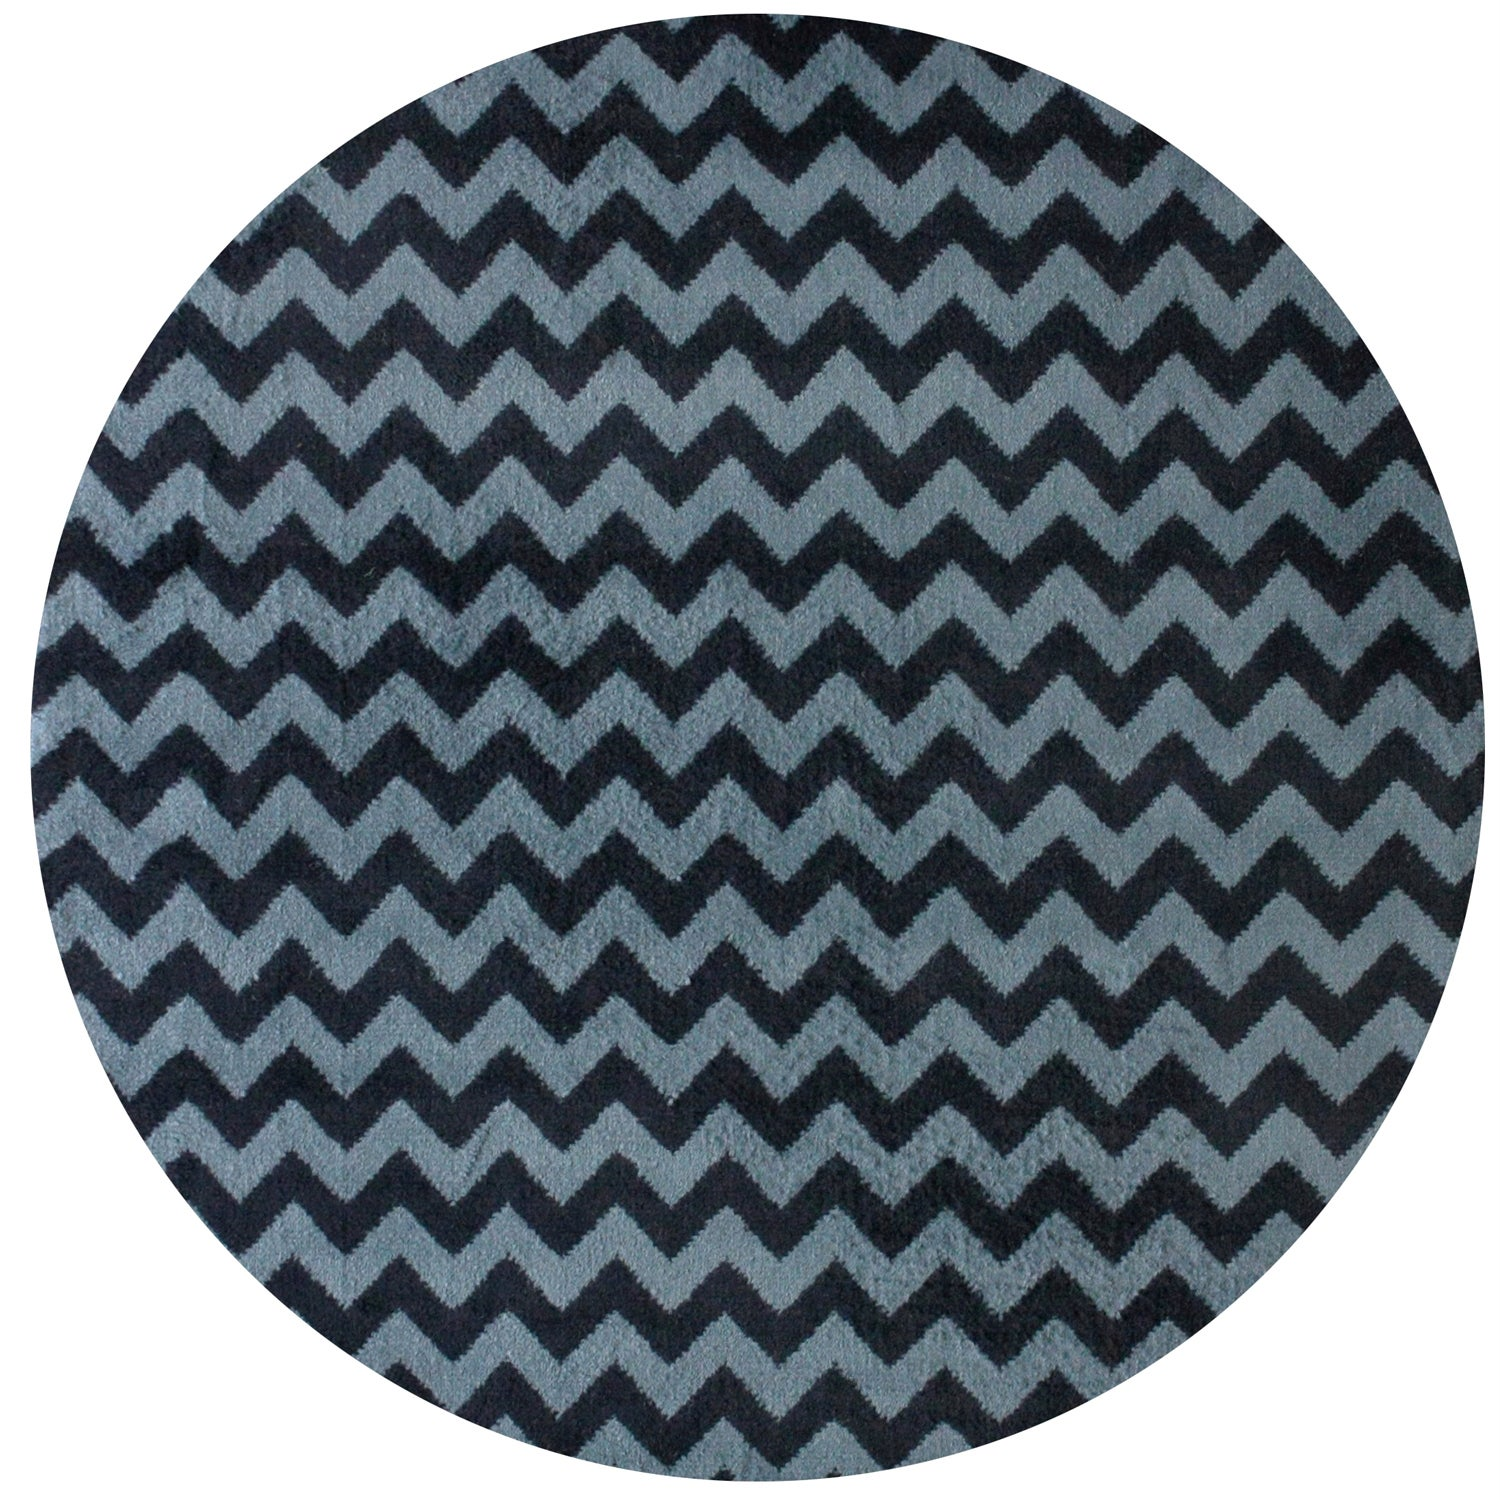 nuLOOM Alexa Chevron Vibe Zebra Round Synthetic Fiber Rug (6' Round) at Sears.com